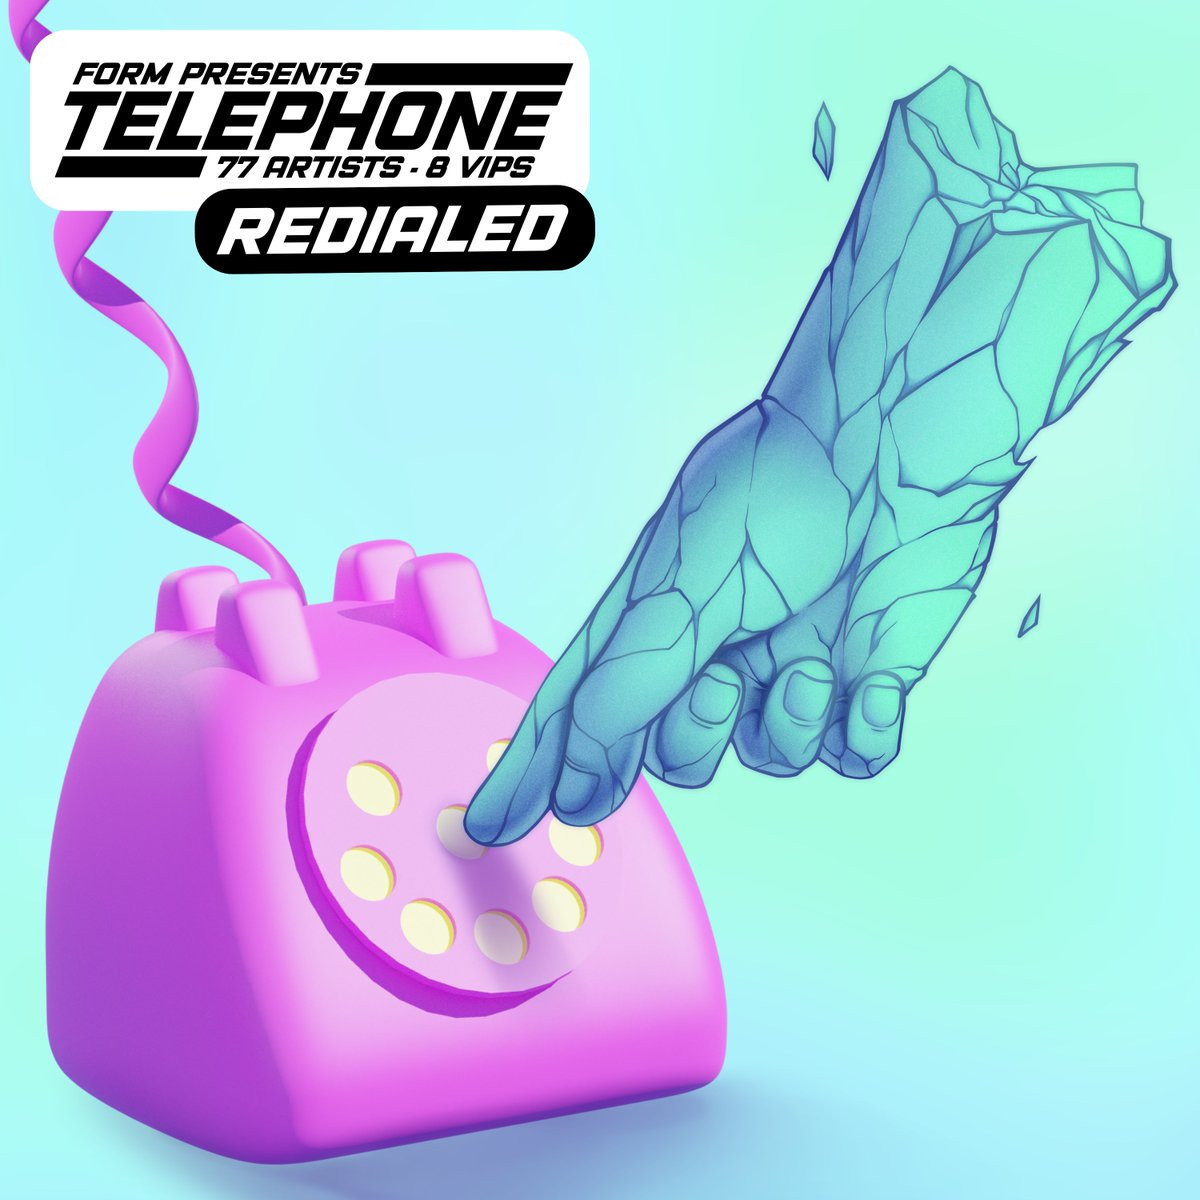 TELEPHONE: REDIALED IS OUT NOW BUY / STREAM: redialed.artbyform.com WITH ALL PROCEEDS GOING TO @TrevorProject